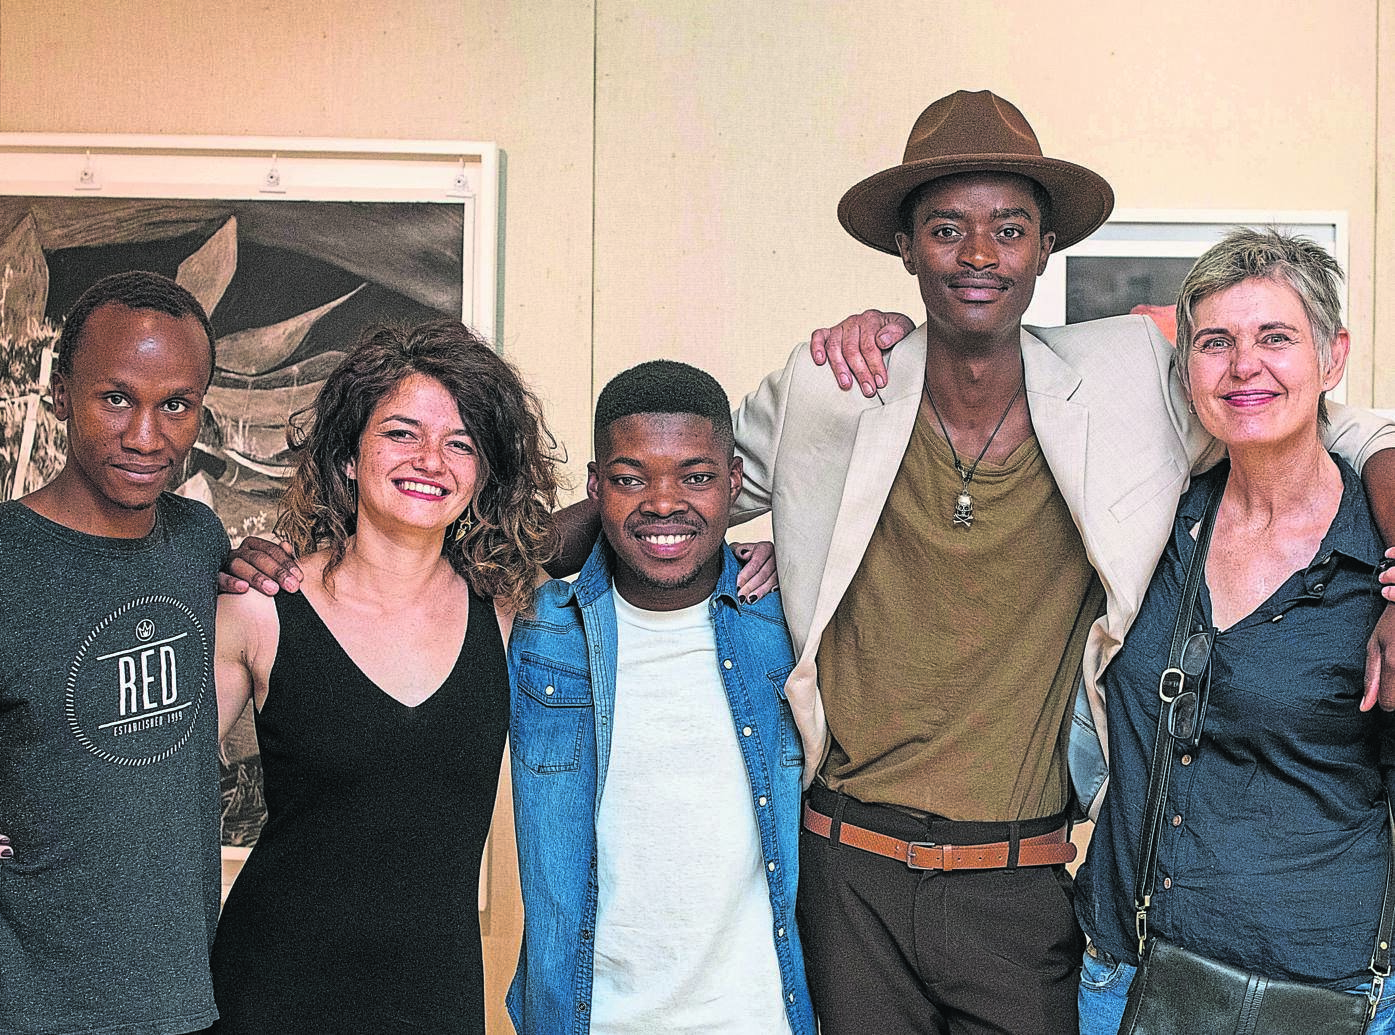 The body of artwork produced by the winners of the 2019 Phatshoane Henney Attorneys New Breed Art Competition is on exhibition. These 25 pieces are on show in the foyer of the law firm's offices at 35 Markgraaff Street, Westdene, Bloemfontein, on weekdays from 08:00 to 17:00. They can also be viewed online as part of a virtual exhibition to allow art lovers worldwide to enjoy an immersive art experience. The virtual exhibition is accessible until 31 October without charge on newbreedart.co.za. From the left are Bokang Nkejane, Miné Kleynhans, Neo Theku, Bongani Tshabalala and Kay Fourie. Photo: Eye Poetry Photography